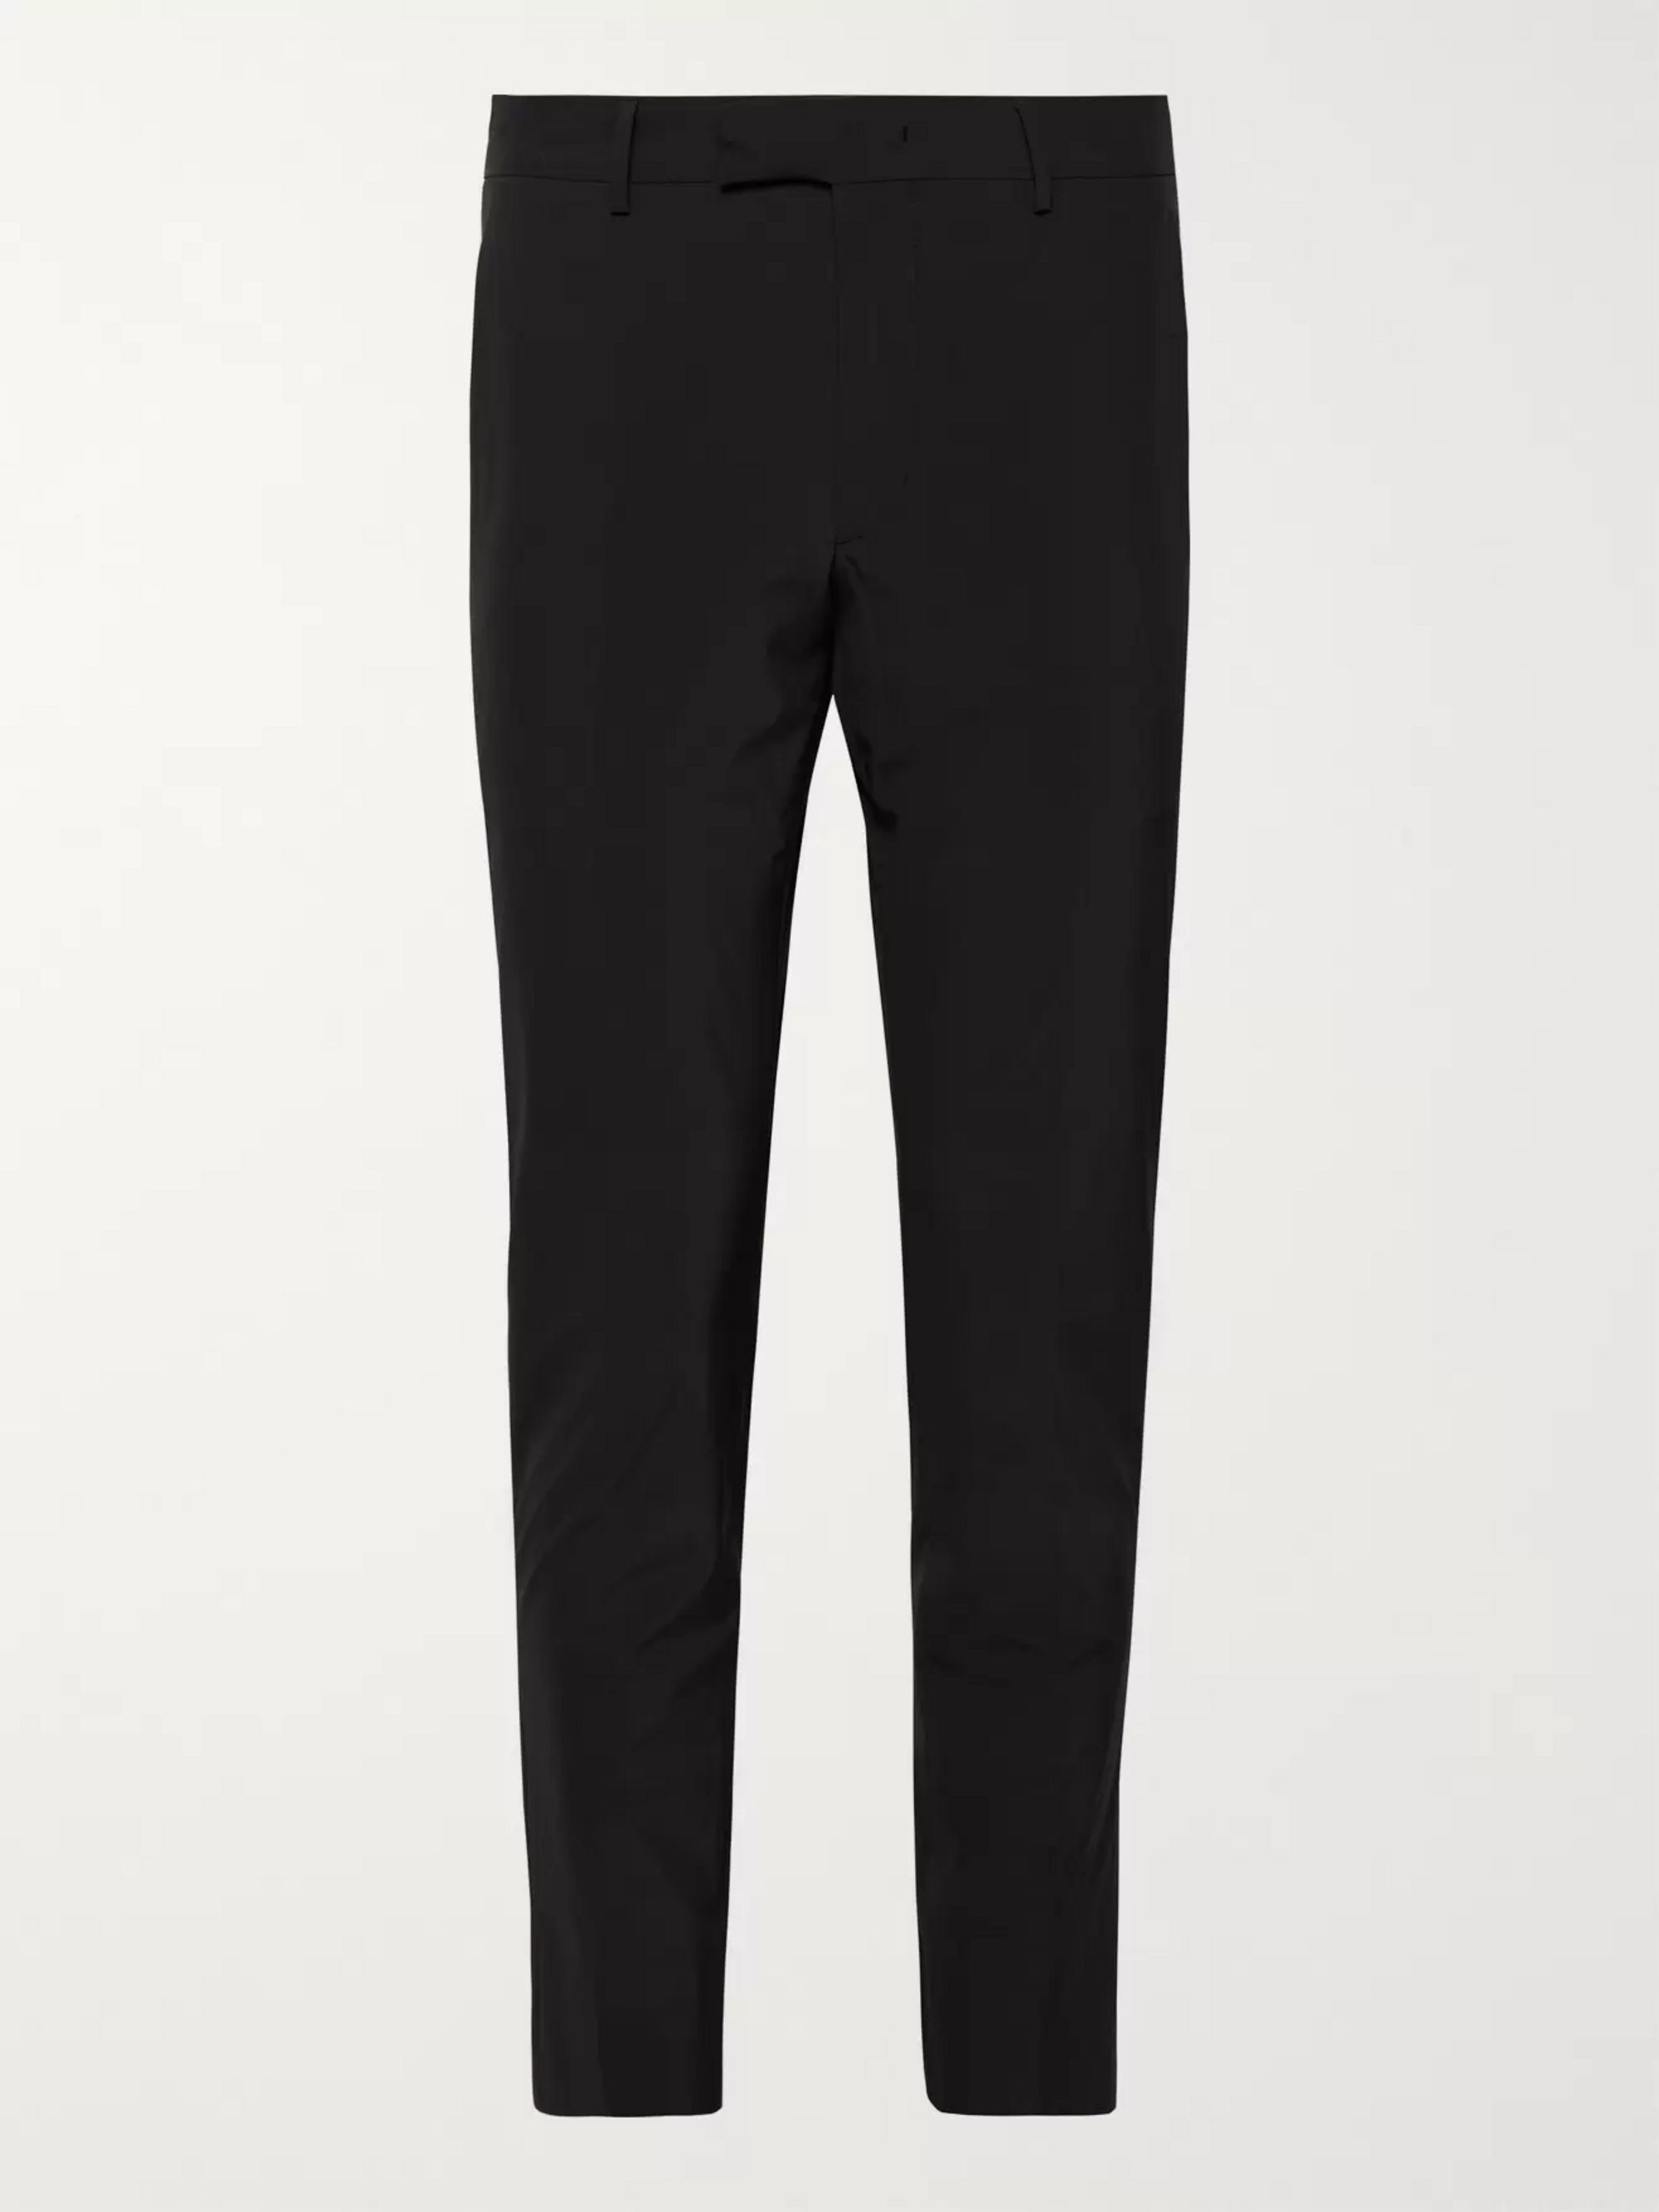 Prada Black Slim-Fit Stretch-Shell Trousers